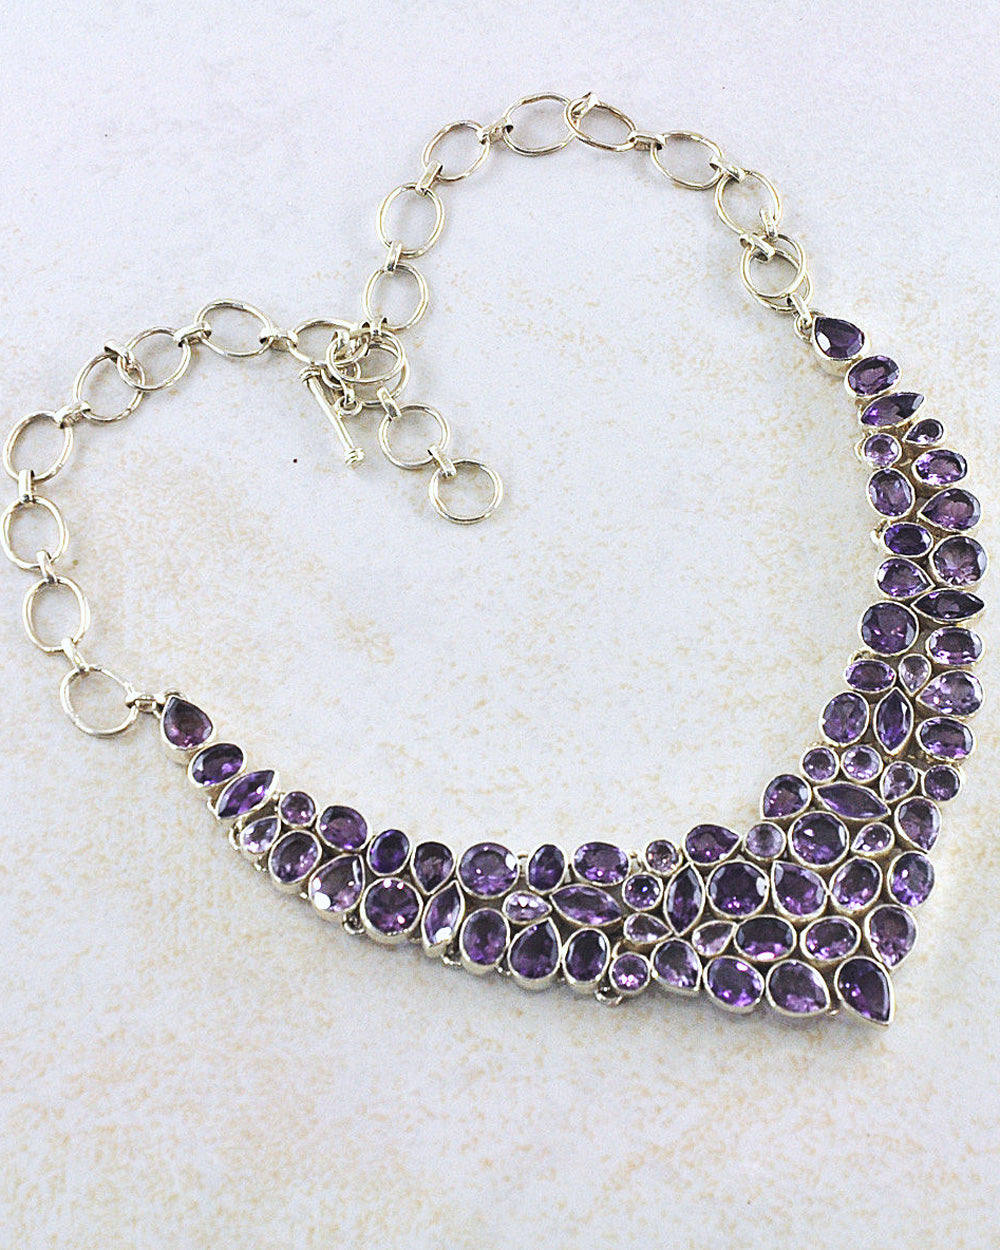 Amethyst Statement Necklace in Sterling Silver